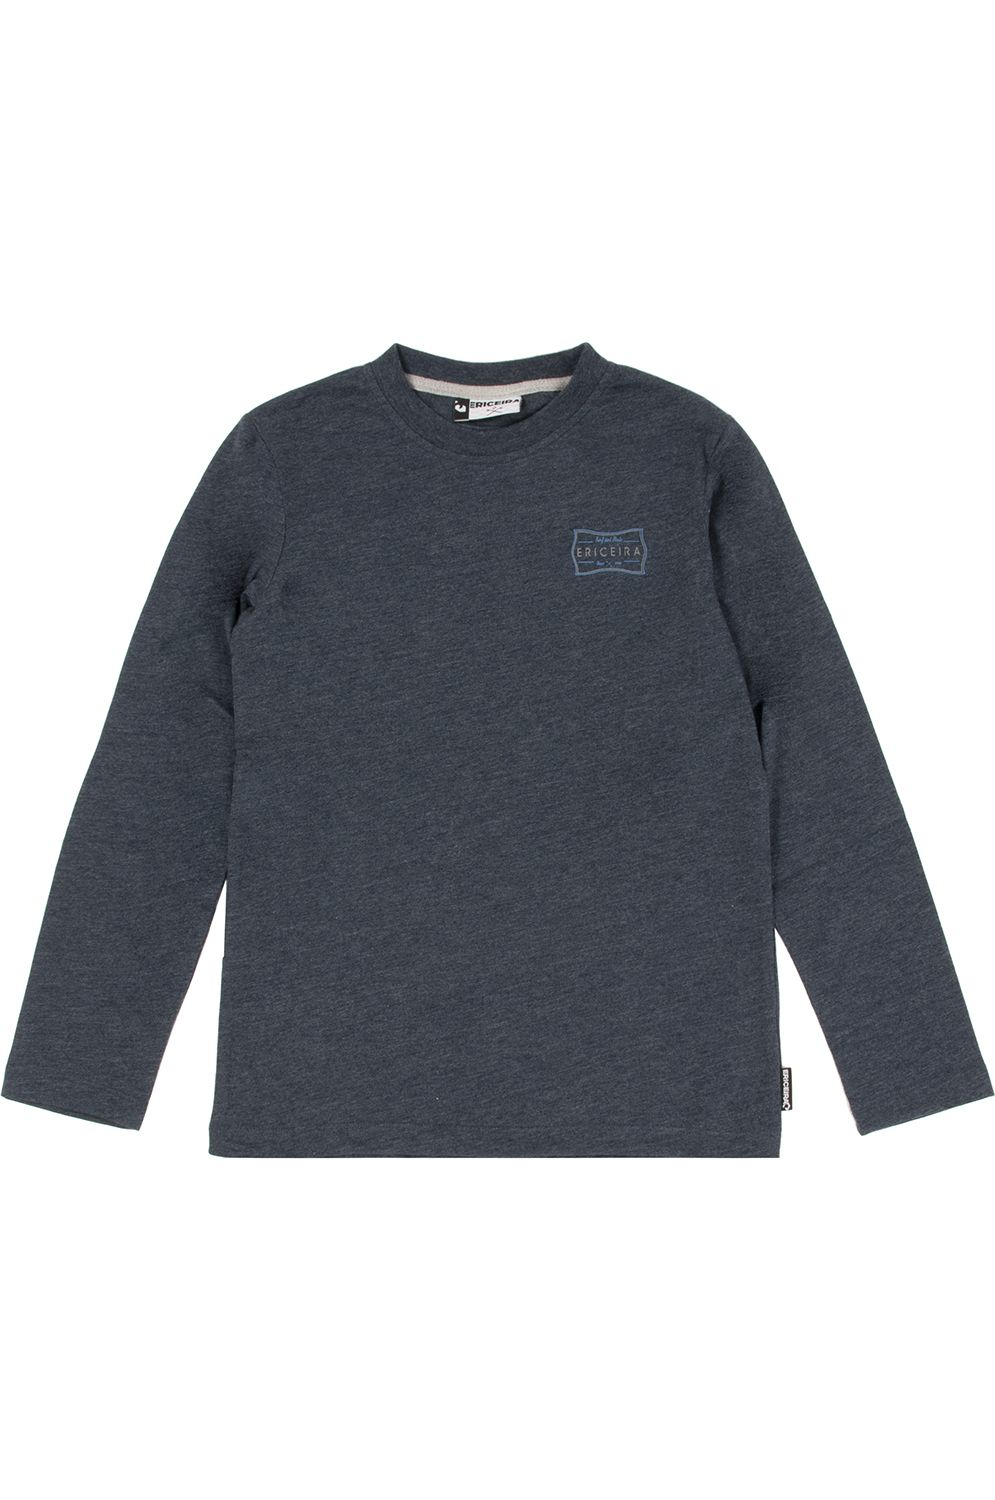 Ericeira Surf Skate L-Sleeve LAGUNDRY Navy Blue Heather